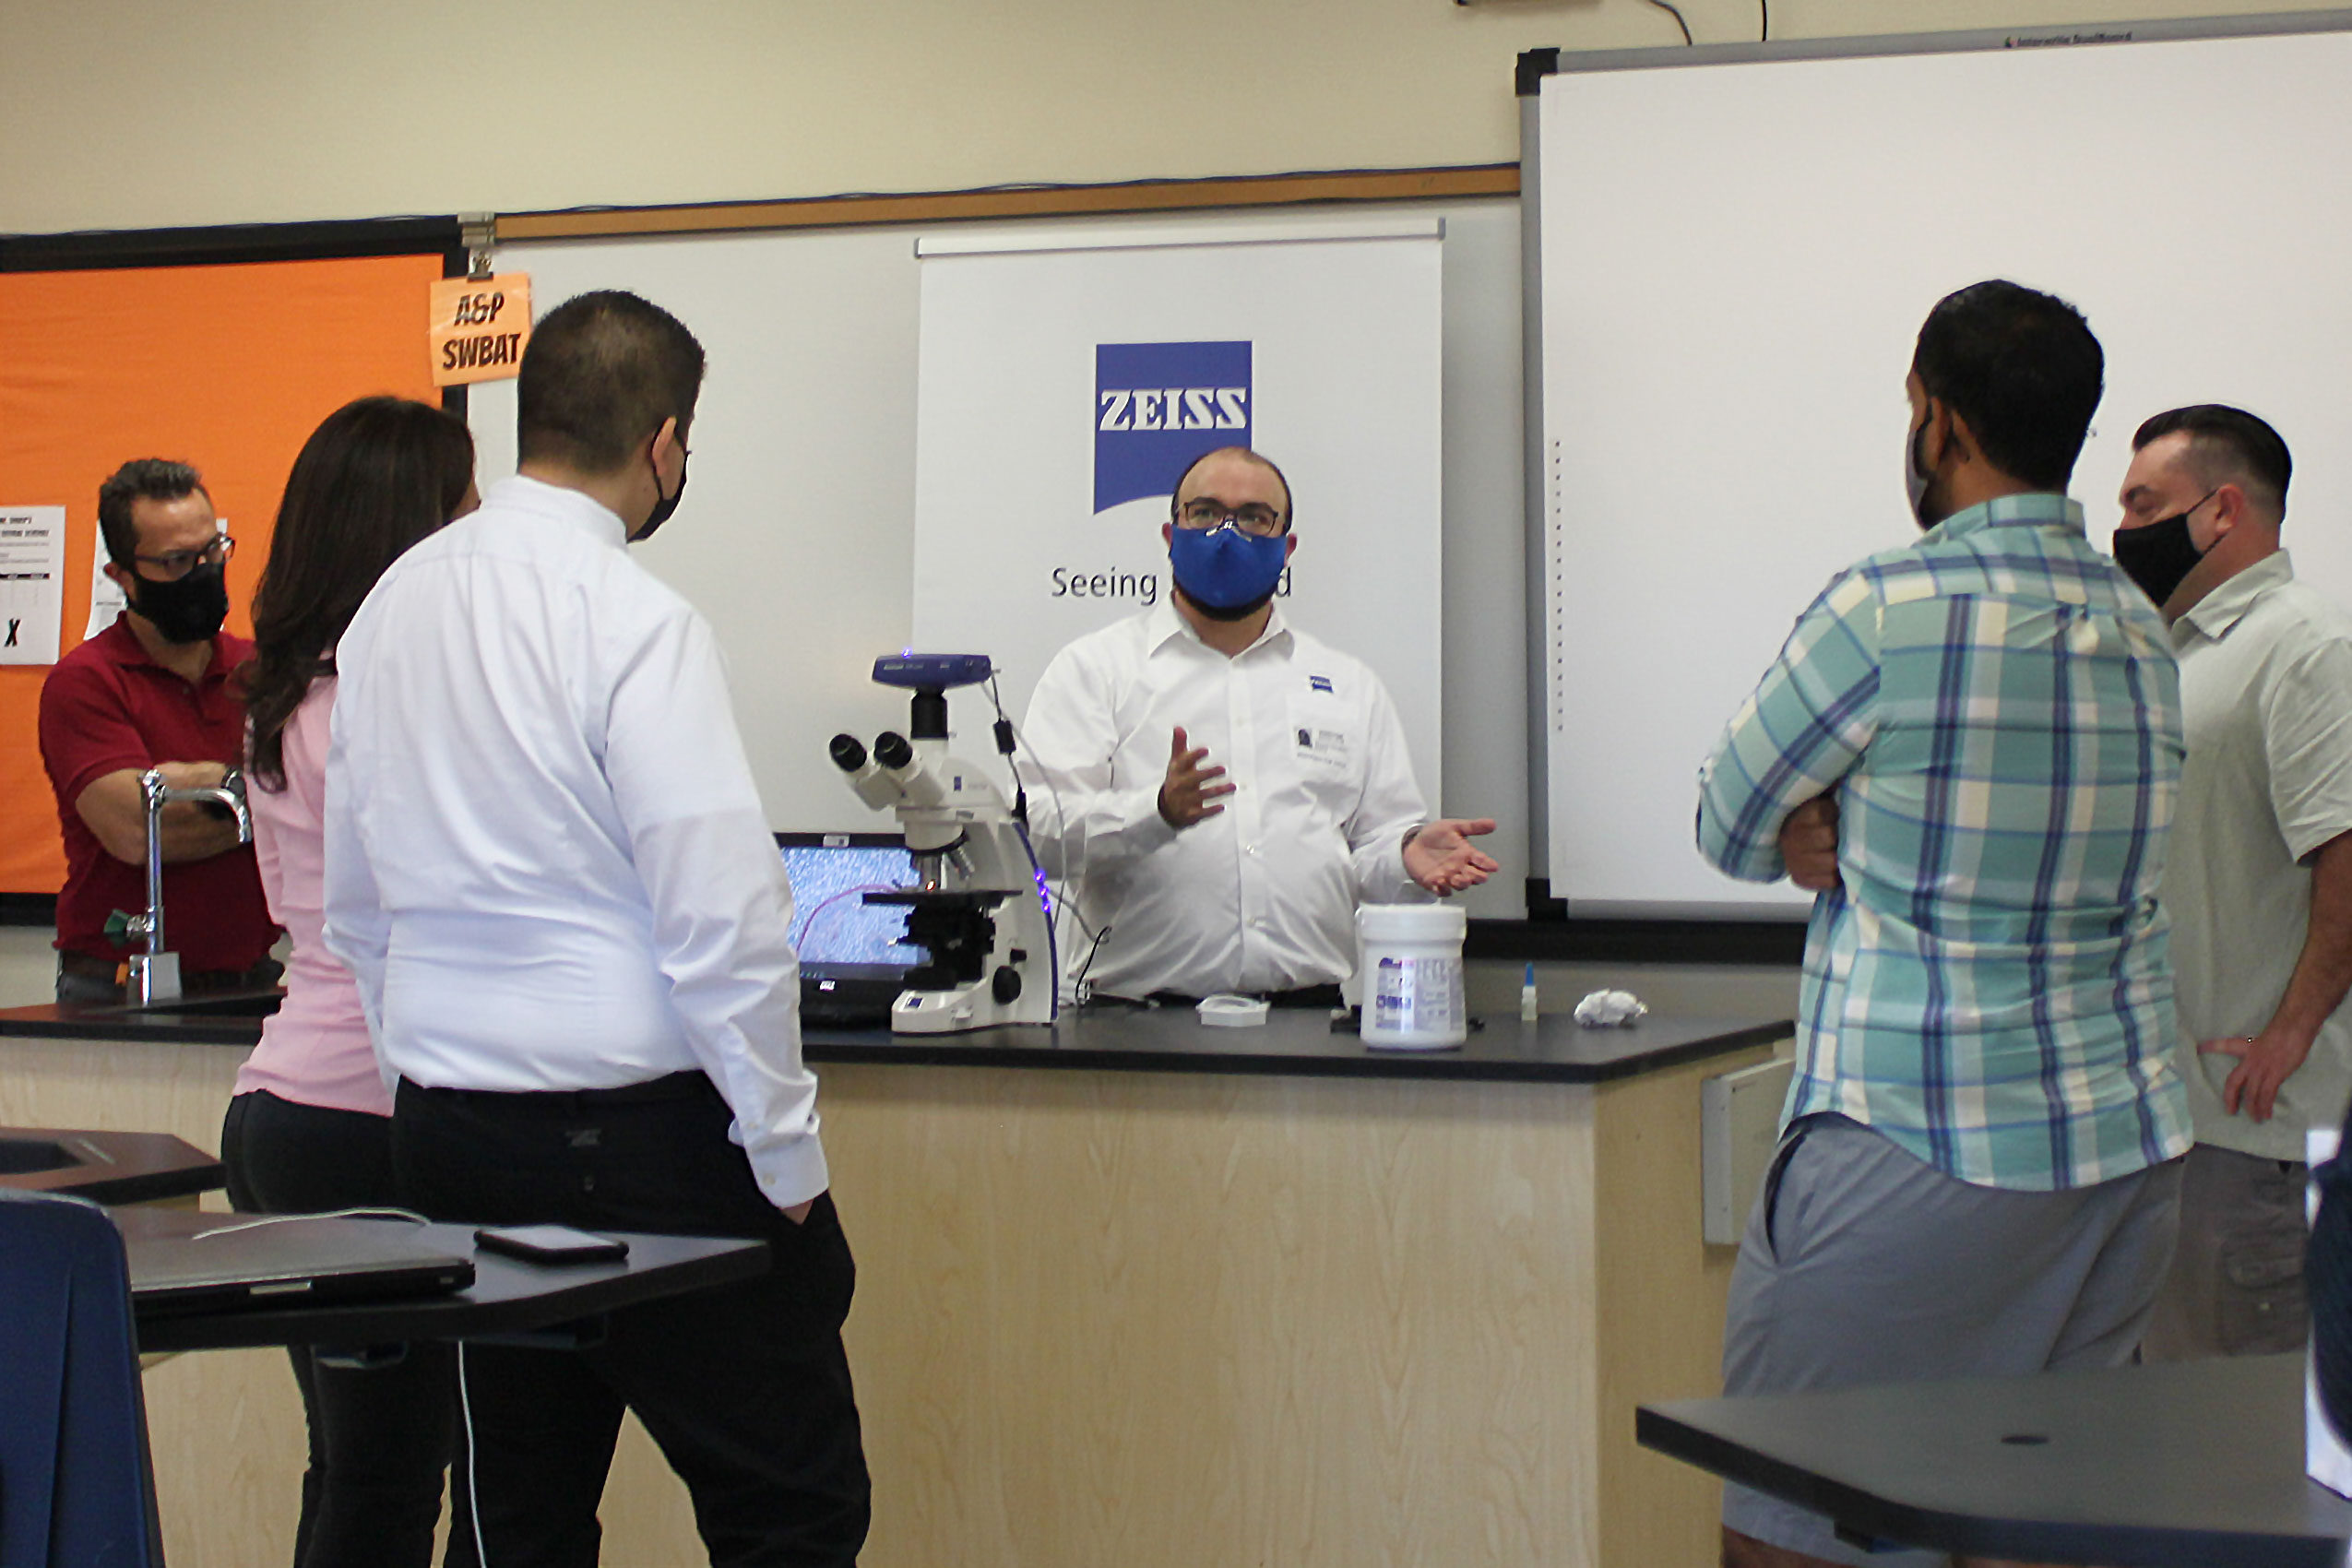 ZEISS Donates Powerful Primo Star Digital Classroom Microscope to Local Schools